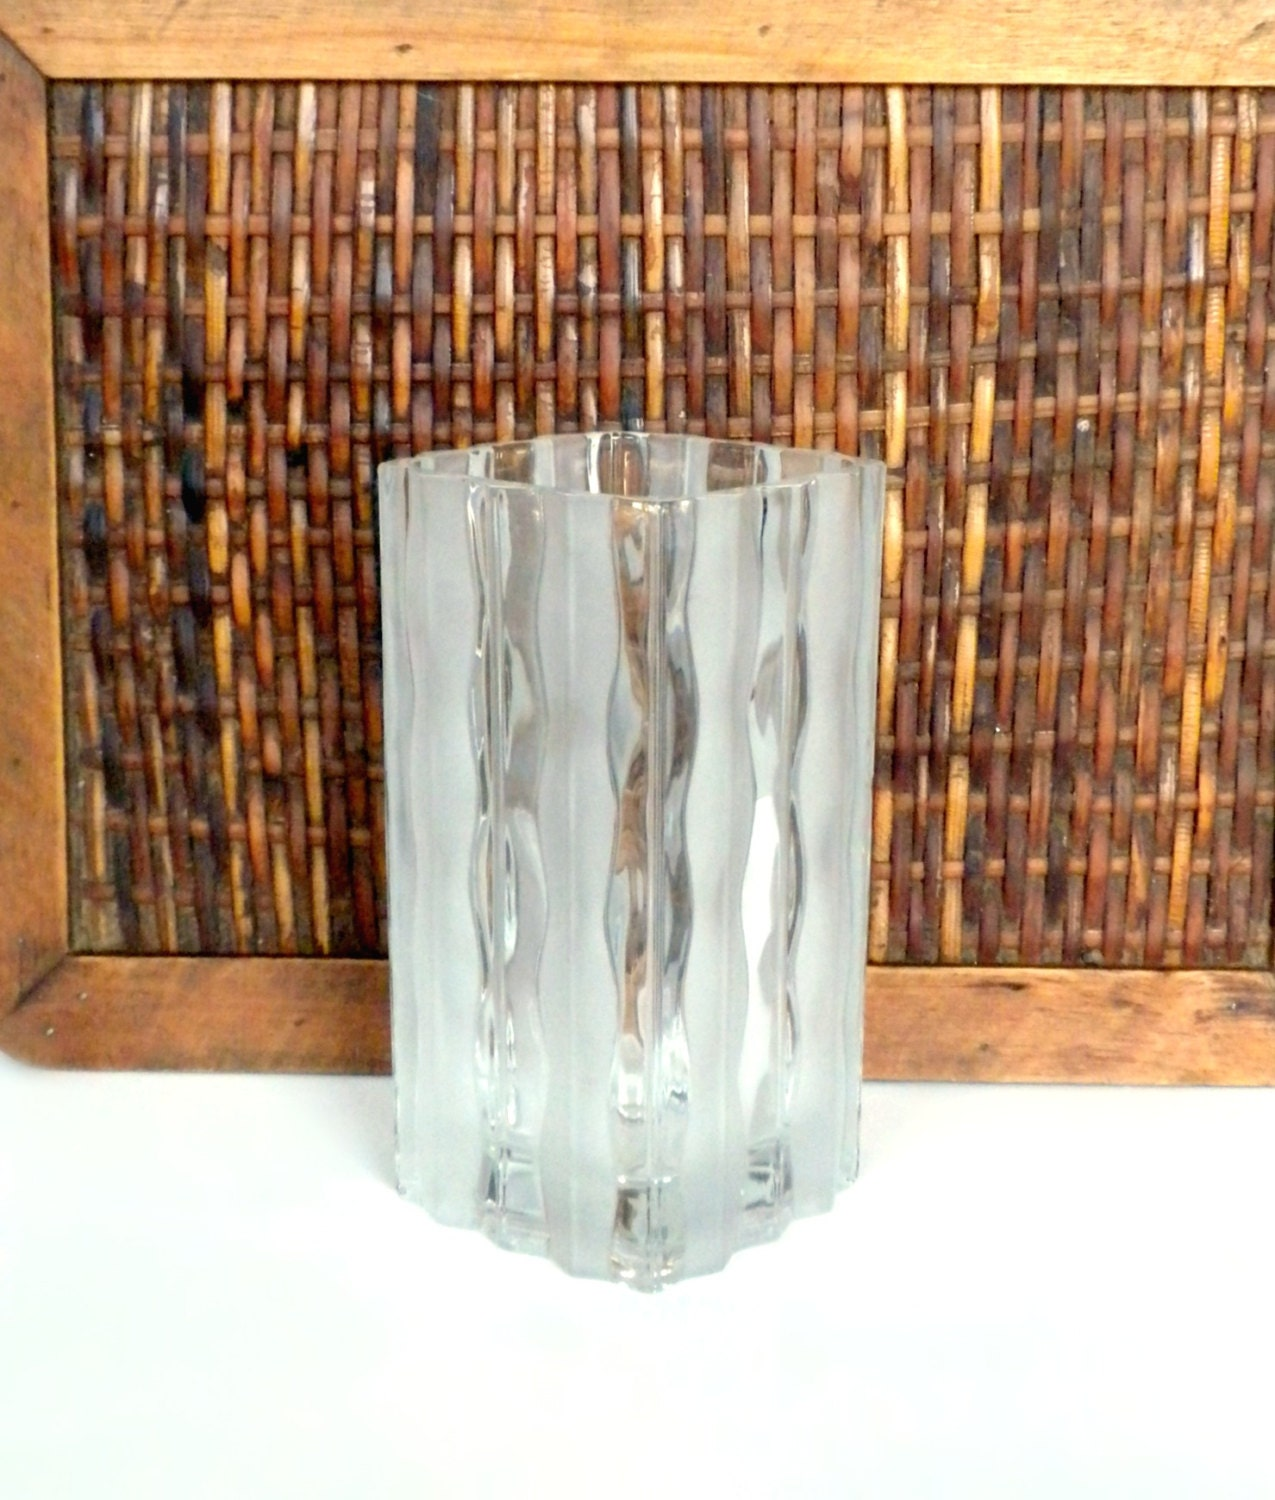 Square flower vase glass vase for flowers clear glass vase zoom reviewsmspy